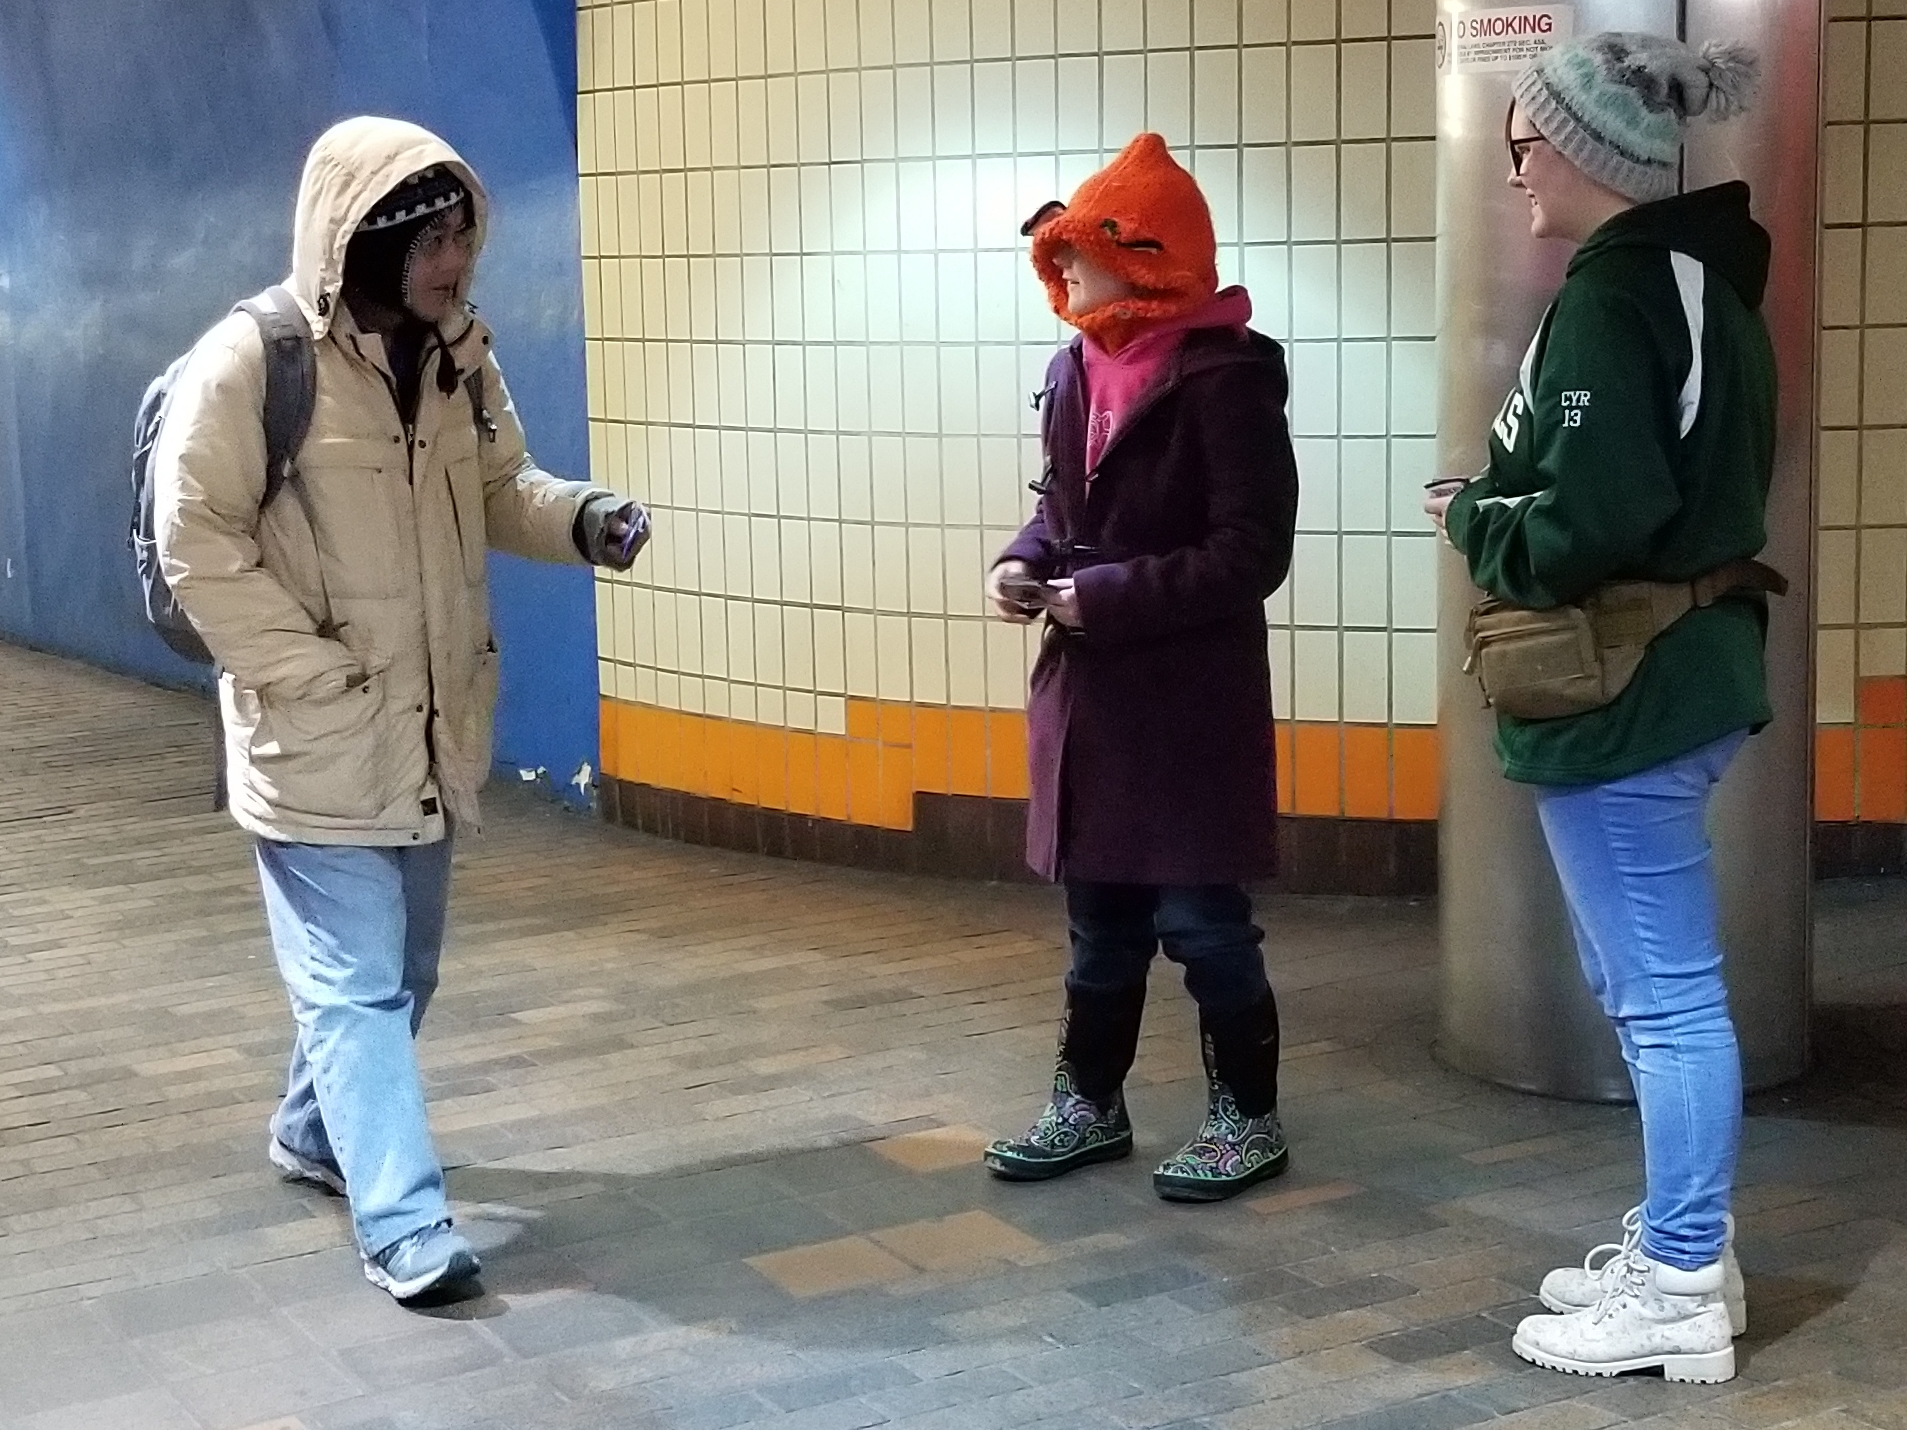 My own daughter, Juliana, and her friend, 'K,' handing out tracts in the subway.